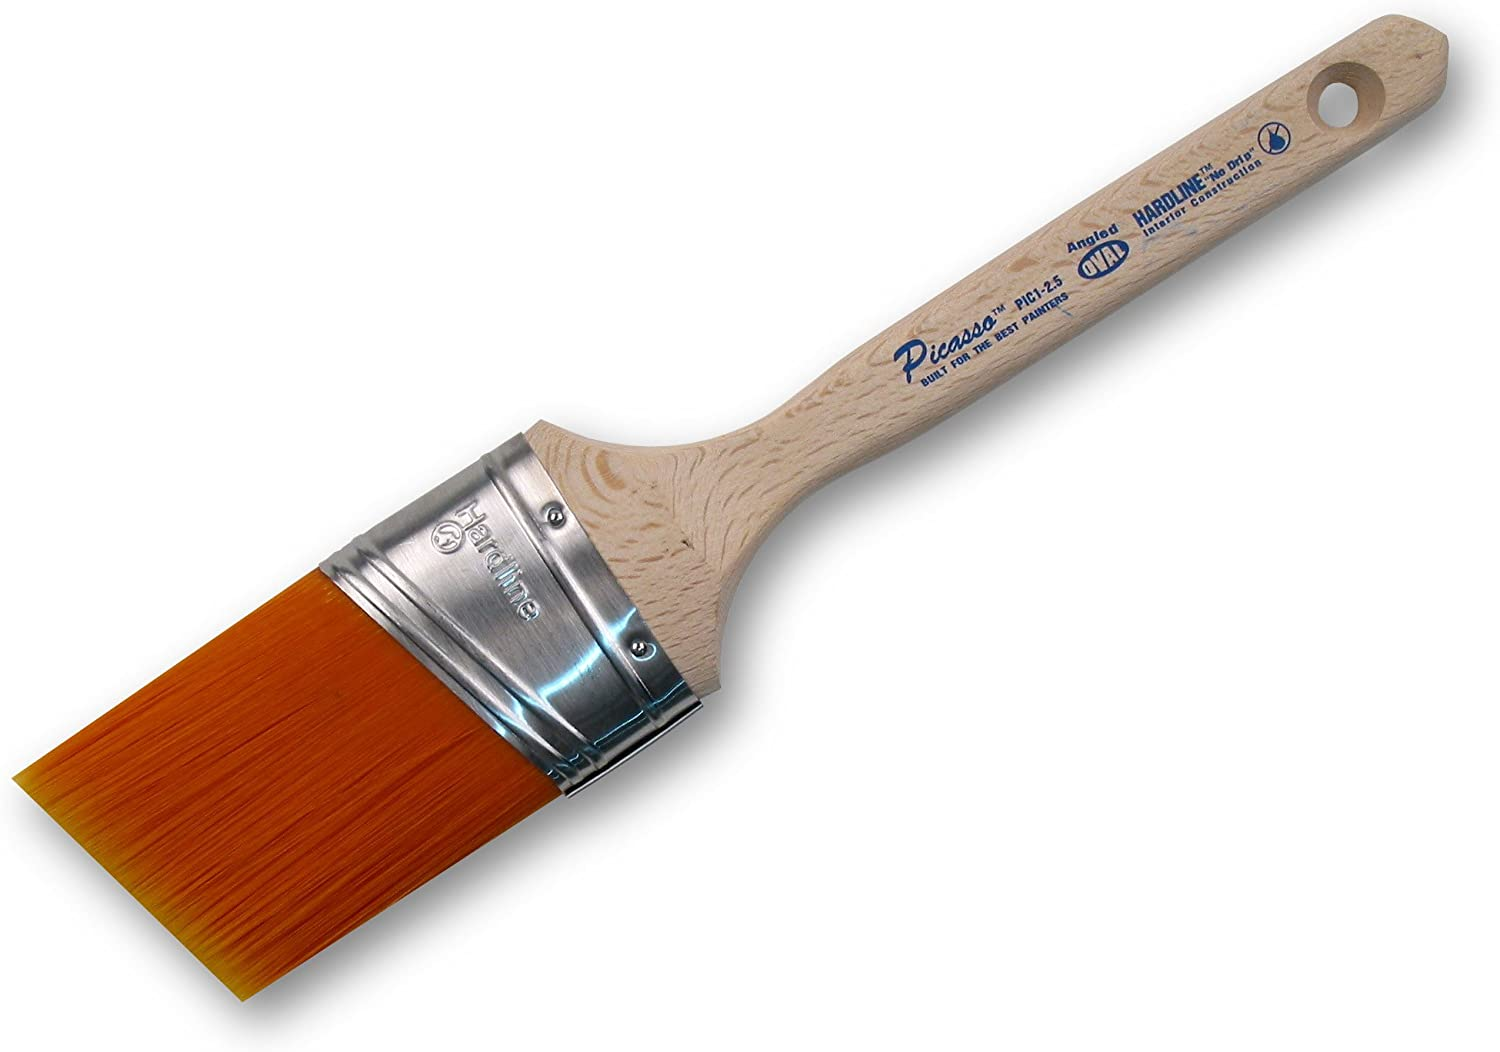 Proform Technologies Picasso Oval Angle Sash Paint Brush